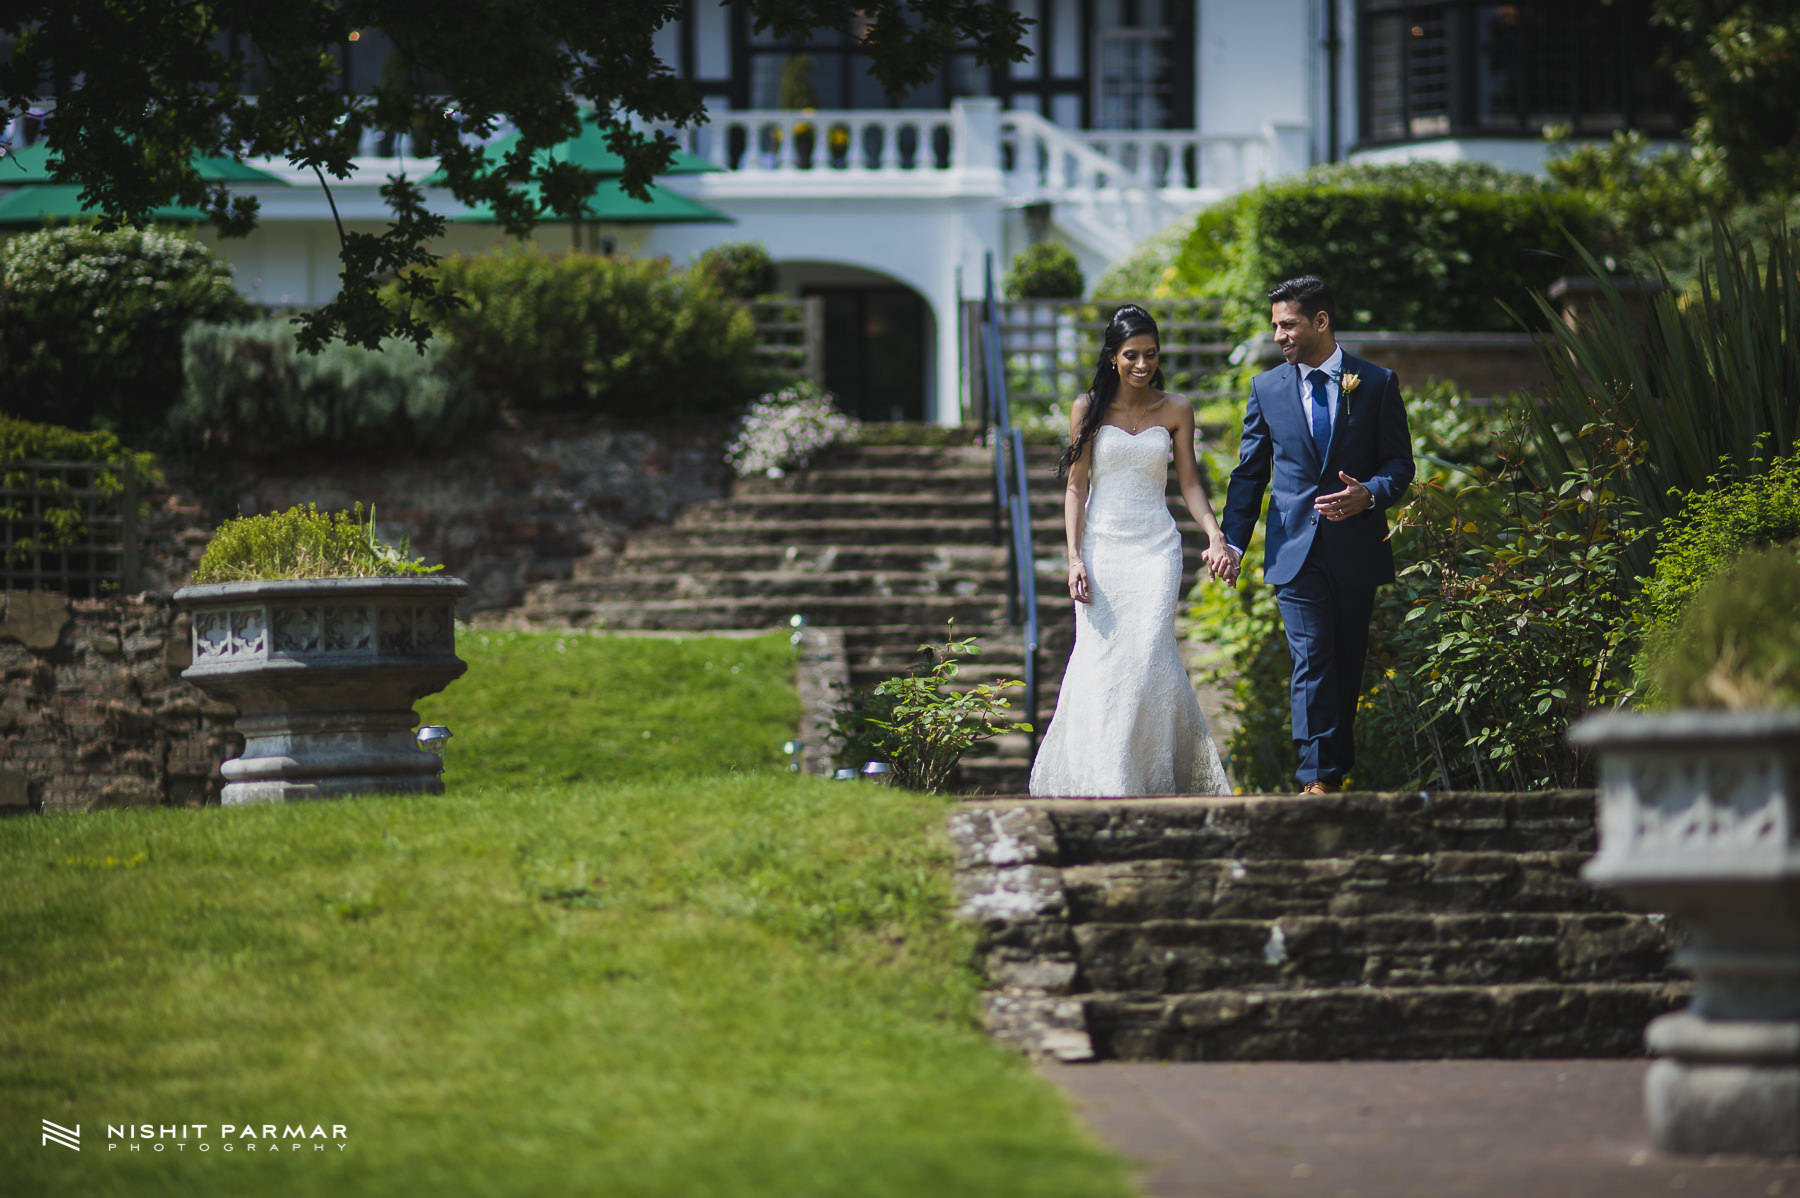 Civil Wedding Laura Ashley Manor Elstree London Wedding Photographer - bride and groom walking